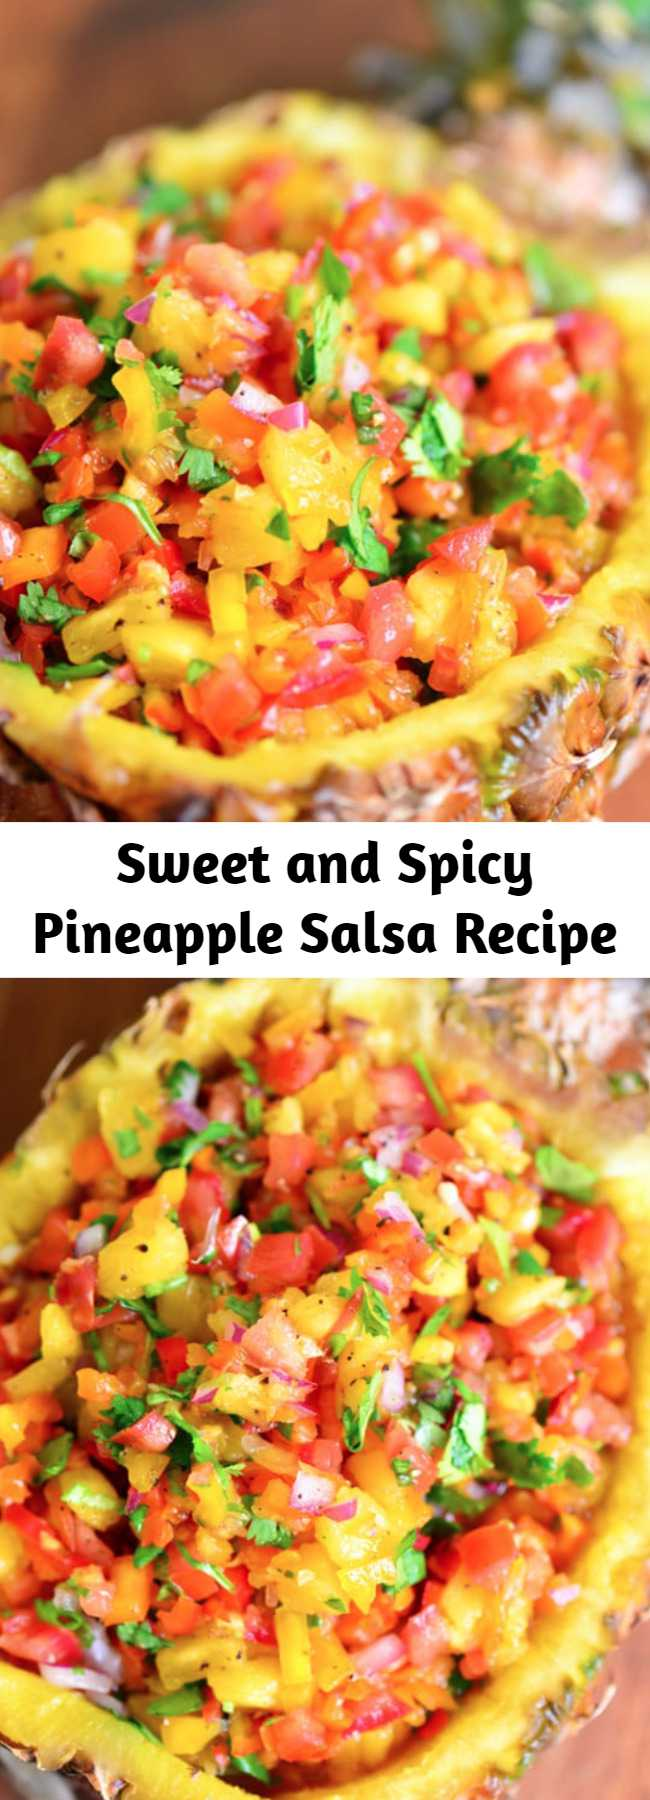 Sweet and Spicy Pineapple Salsa Recipe - This pineapple salsa recipe has a delicious combination of sweet and spicy. It can be served with grilled chicken or fish or as an appetizer with chips.